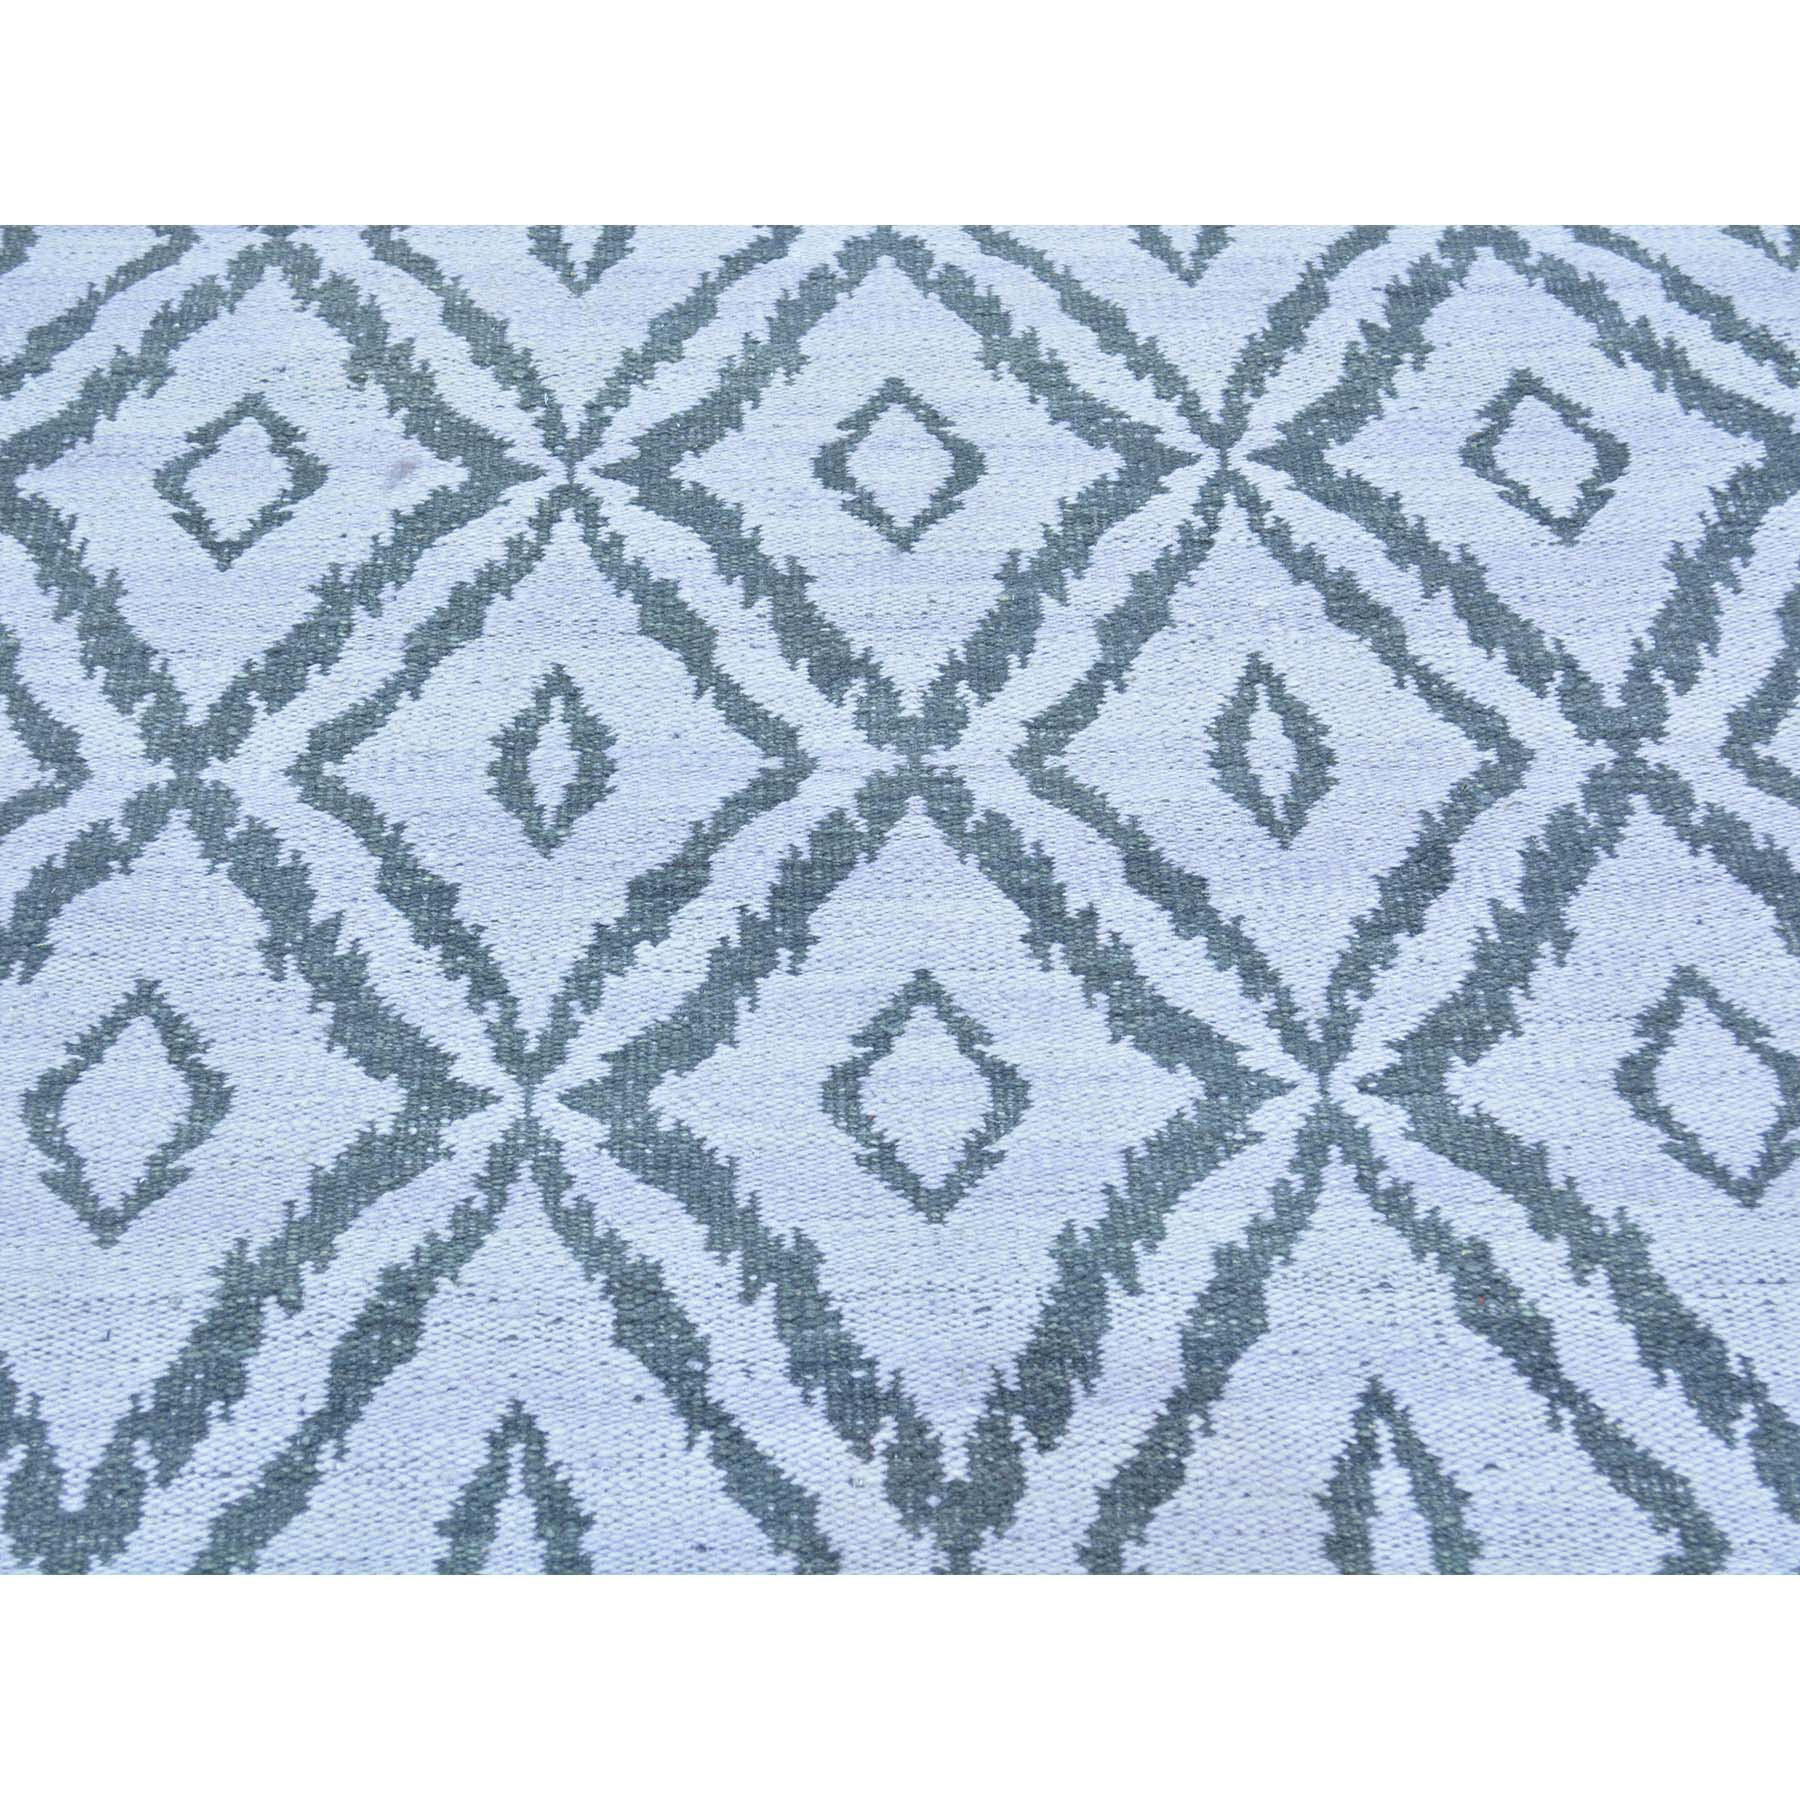 "Handmade Flat Weave Rectangle Rug > Design# SH29811 > Size: 5'-1"" x 7'-9"" [ONLINE ONLY]"